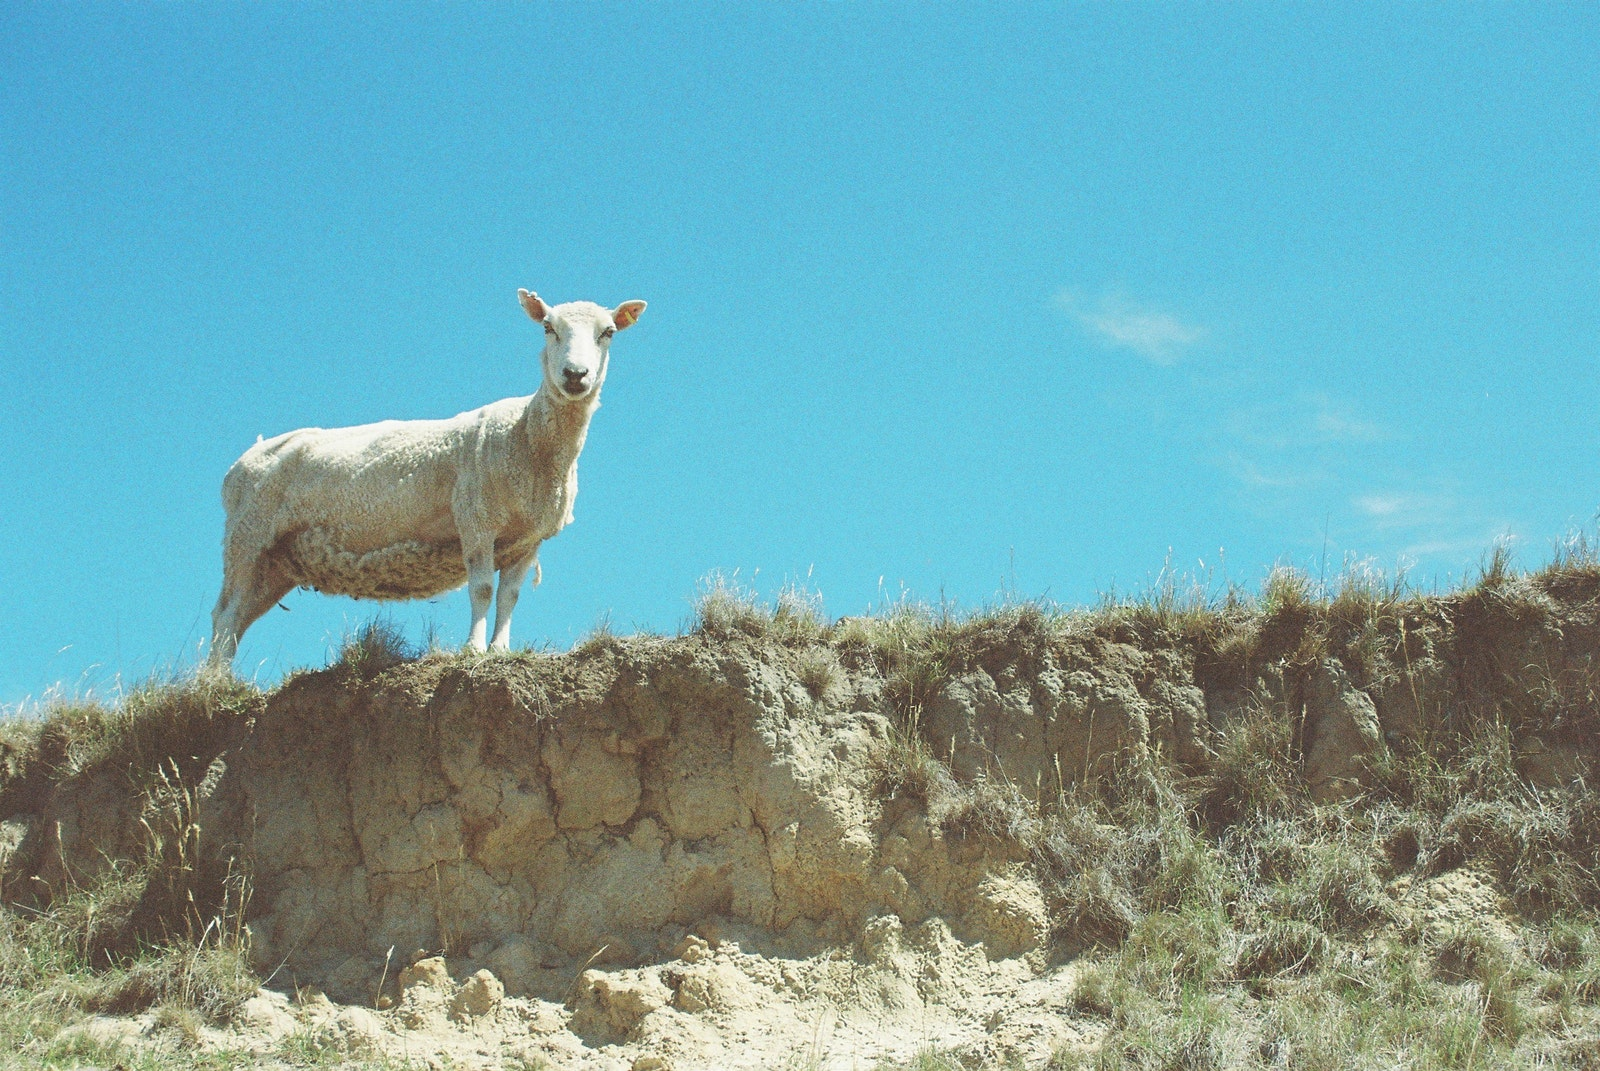 A sheep standing on a hill looking at the camera